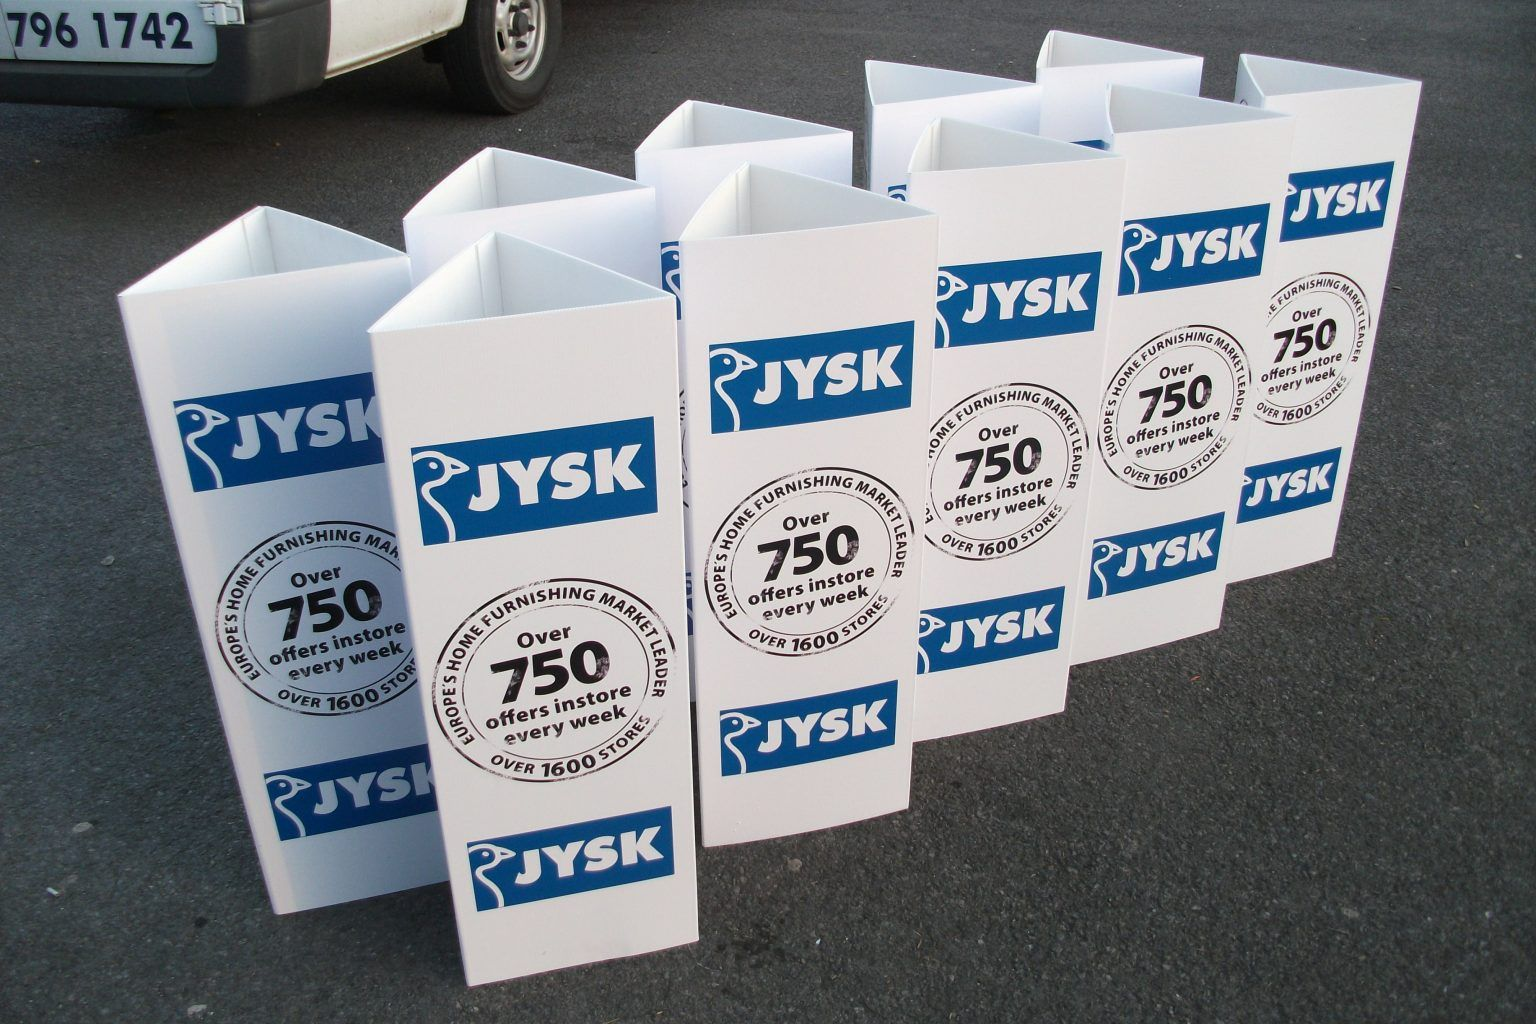 JYSK Large format digitally printed bollard wraps